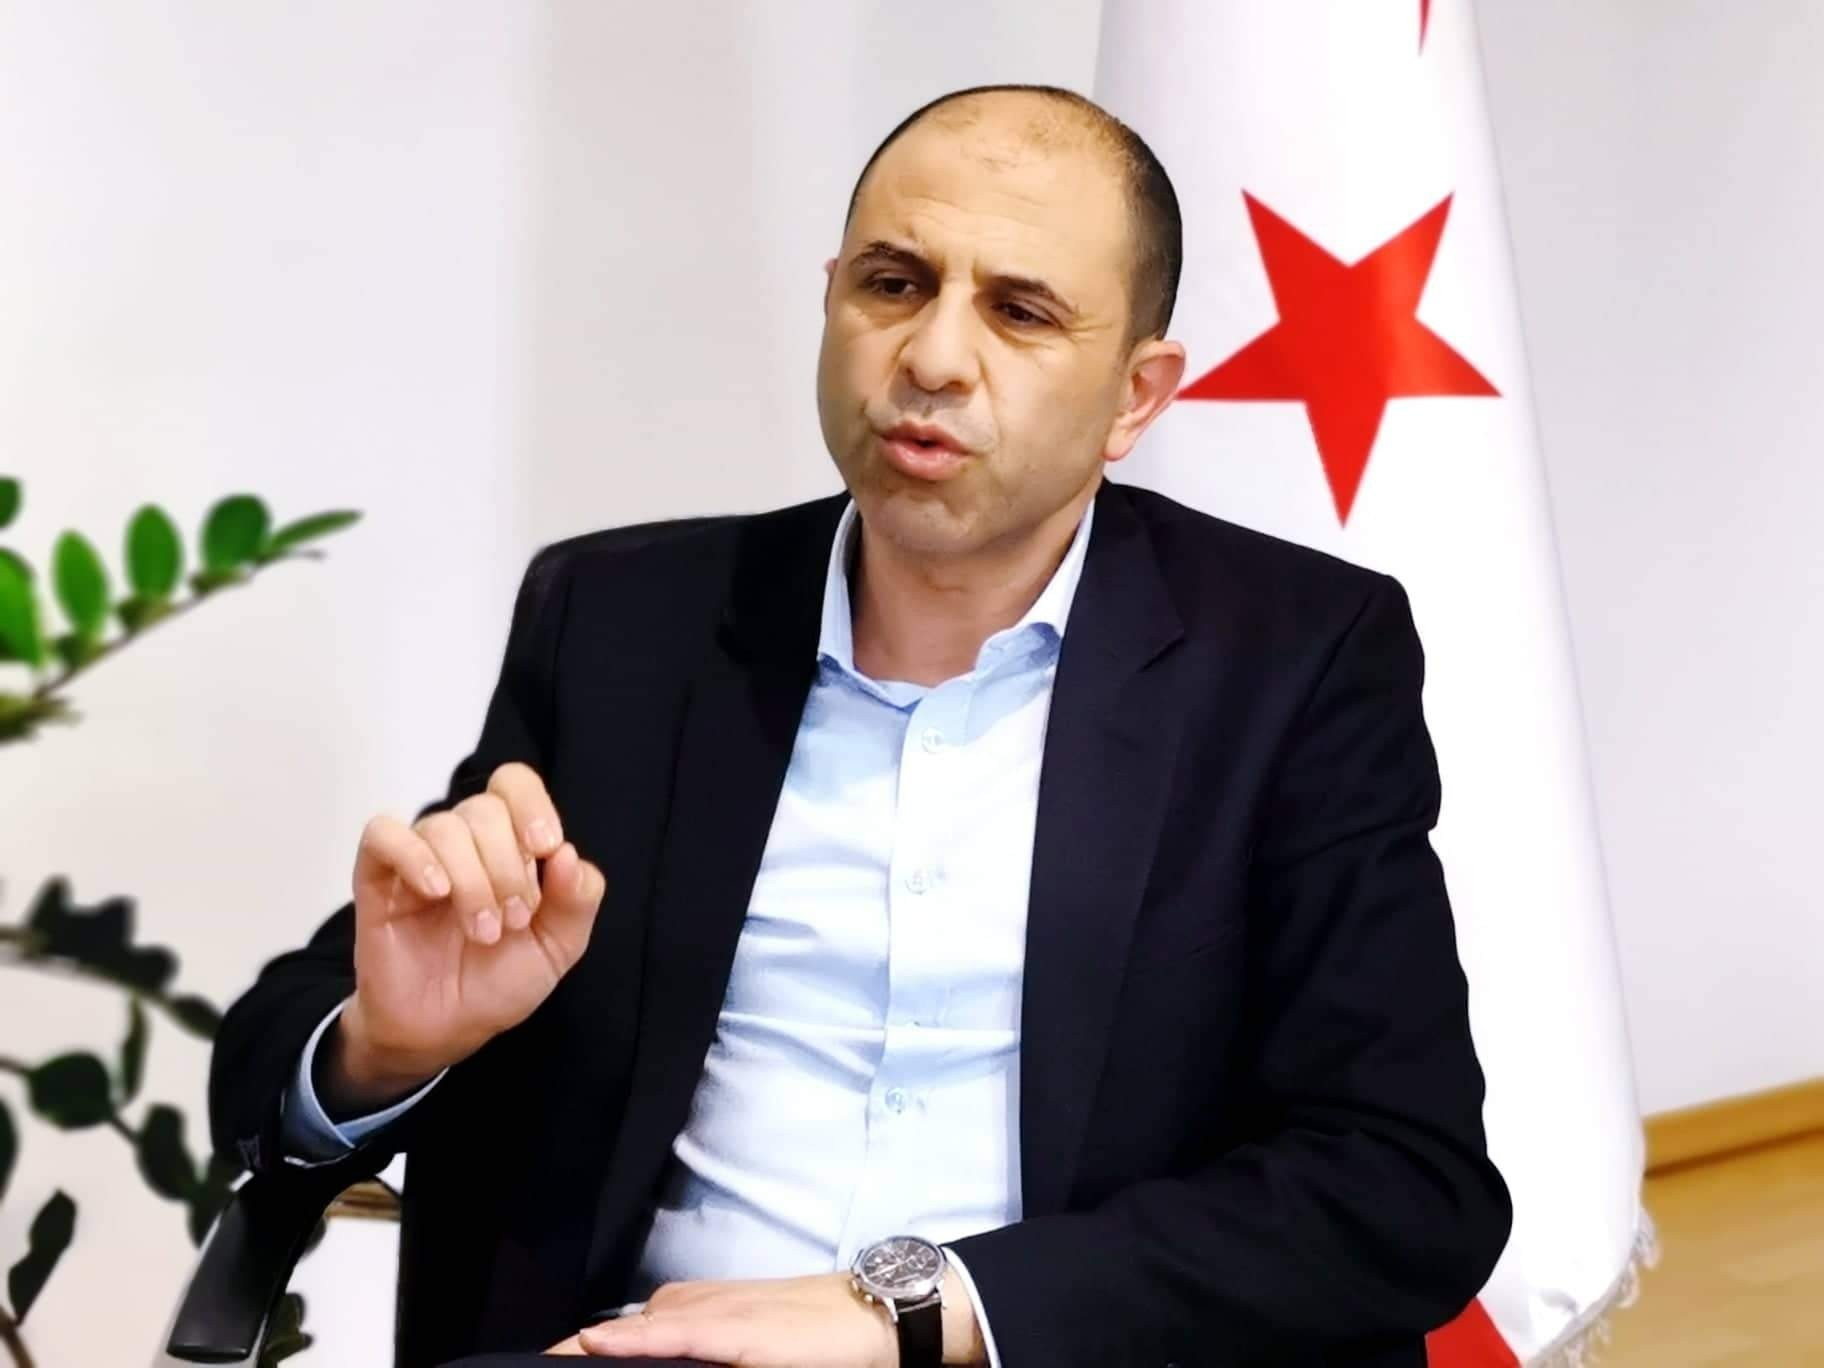 Foreign Minister and Deputy Prime Minister Kudret Özersay running in the presidential elections of the northern Cyprus for the second time after his defeat back in 2015. (IHA)